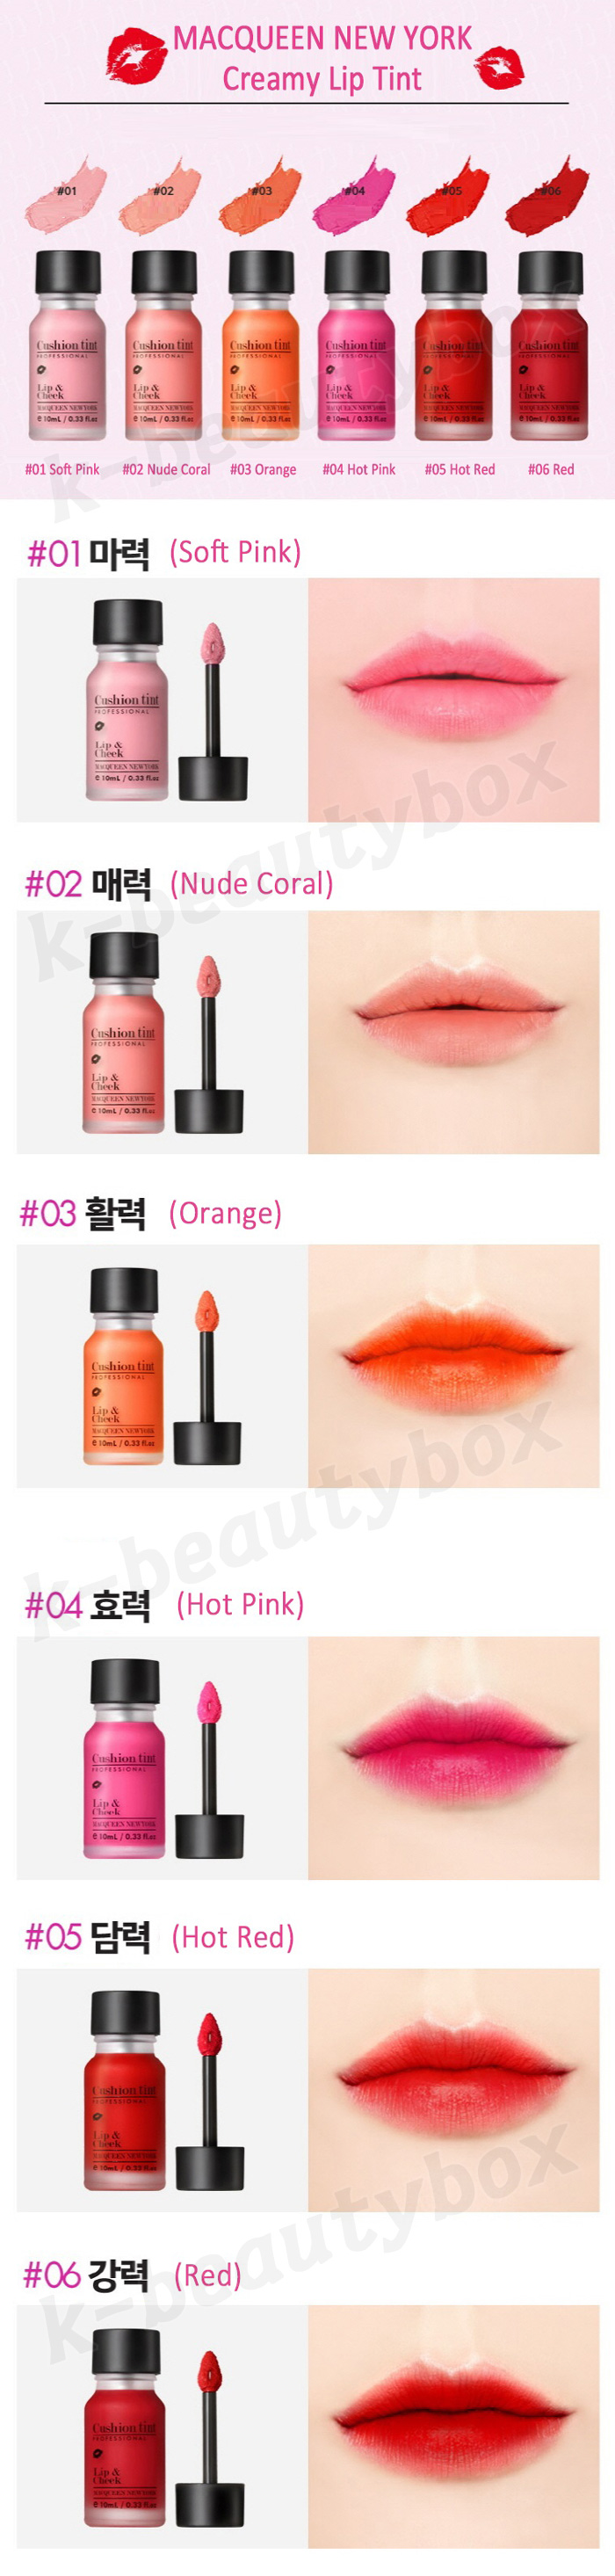 Macqueen Creamy Lip Tint No02 Nude Coral Stain Lipstick City Color Lips Or Fill Out The Entirely Area For A Bold And Dramatic Finish Apply Moderate Amount From Inside To Outside Of Gently